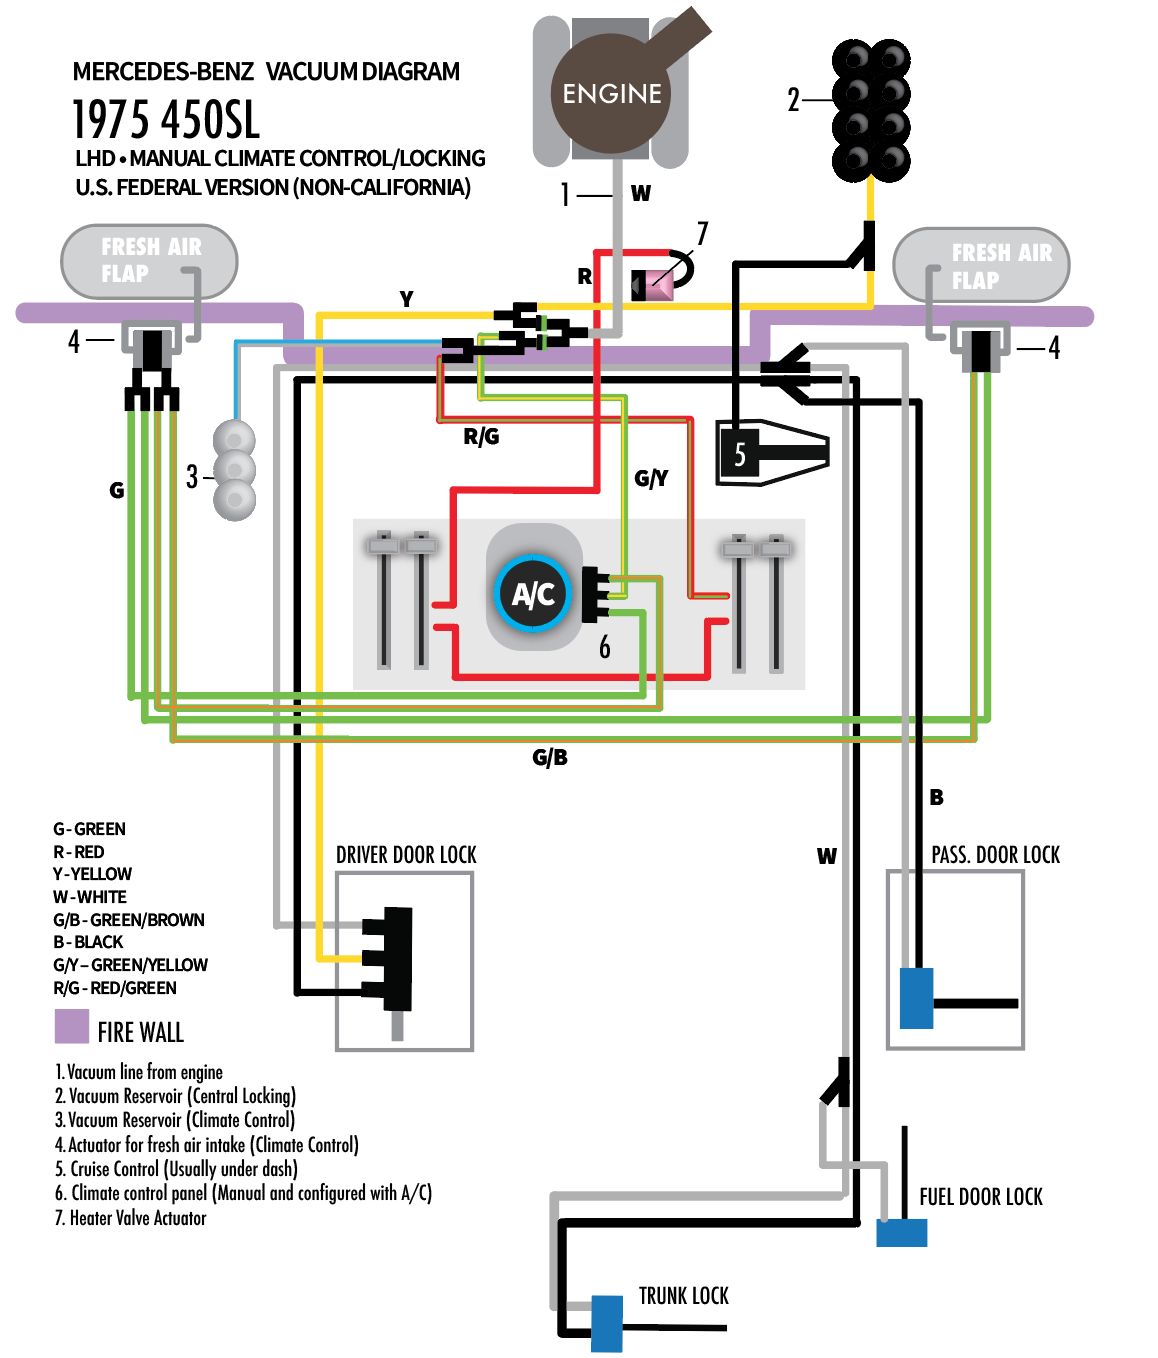 mercedes benz vacuum line diagram wiring diagram used 1985 mercedes benz fuel system diagram [ 1158 x 1358 Pixel ]